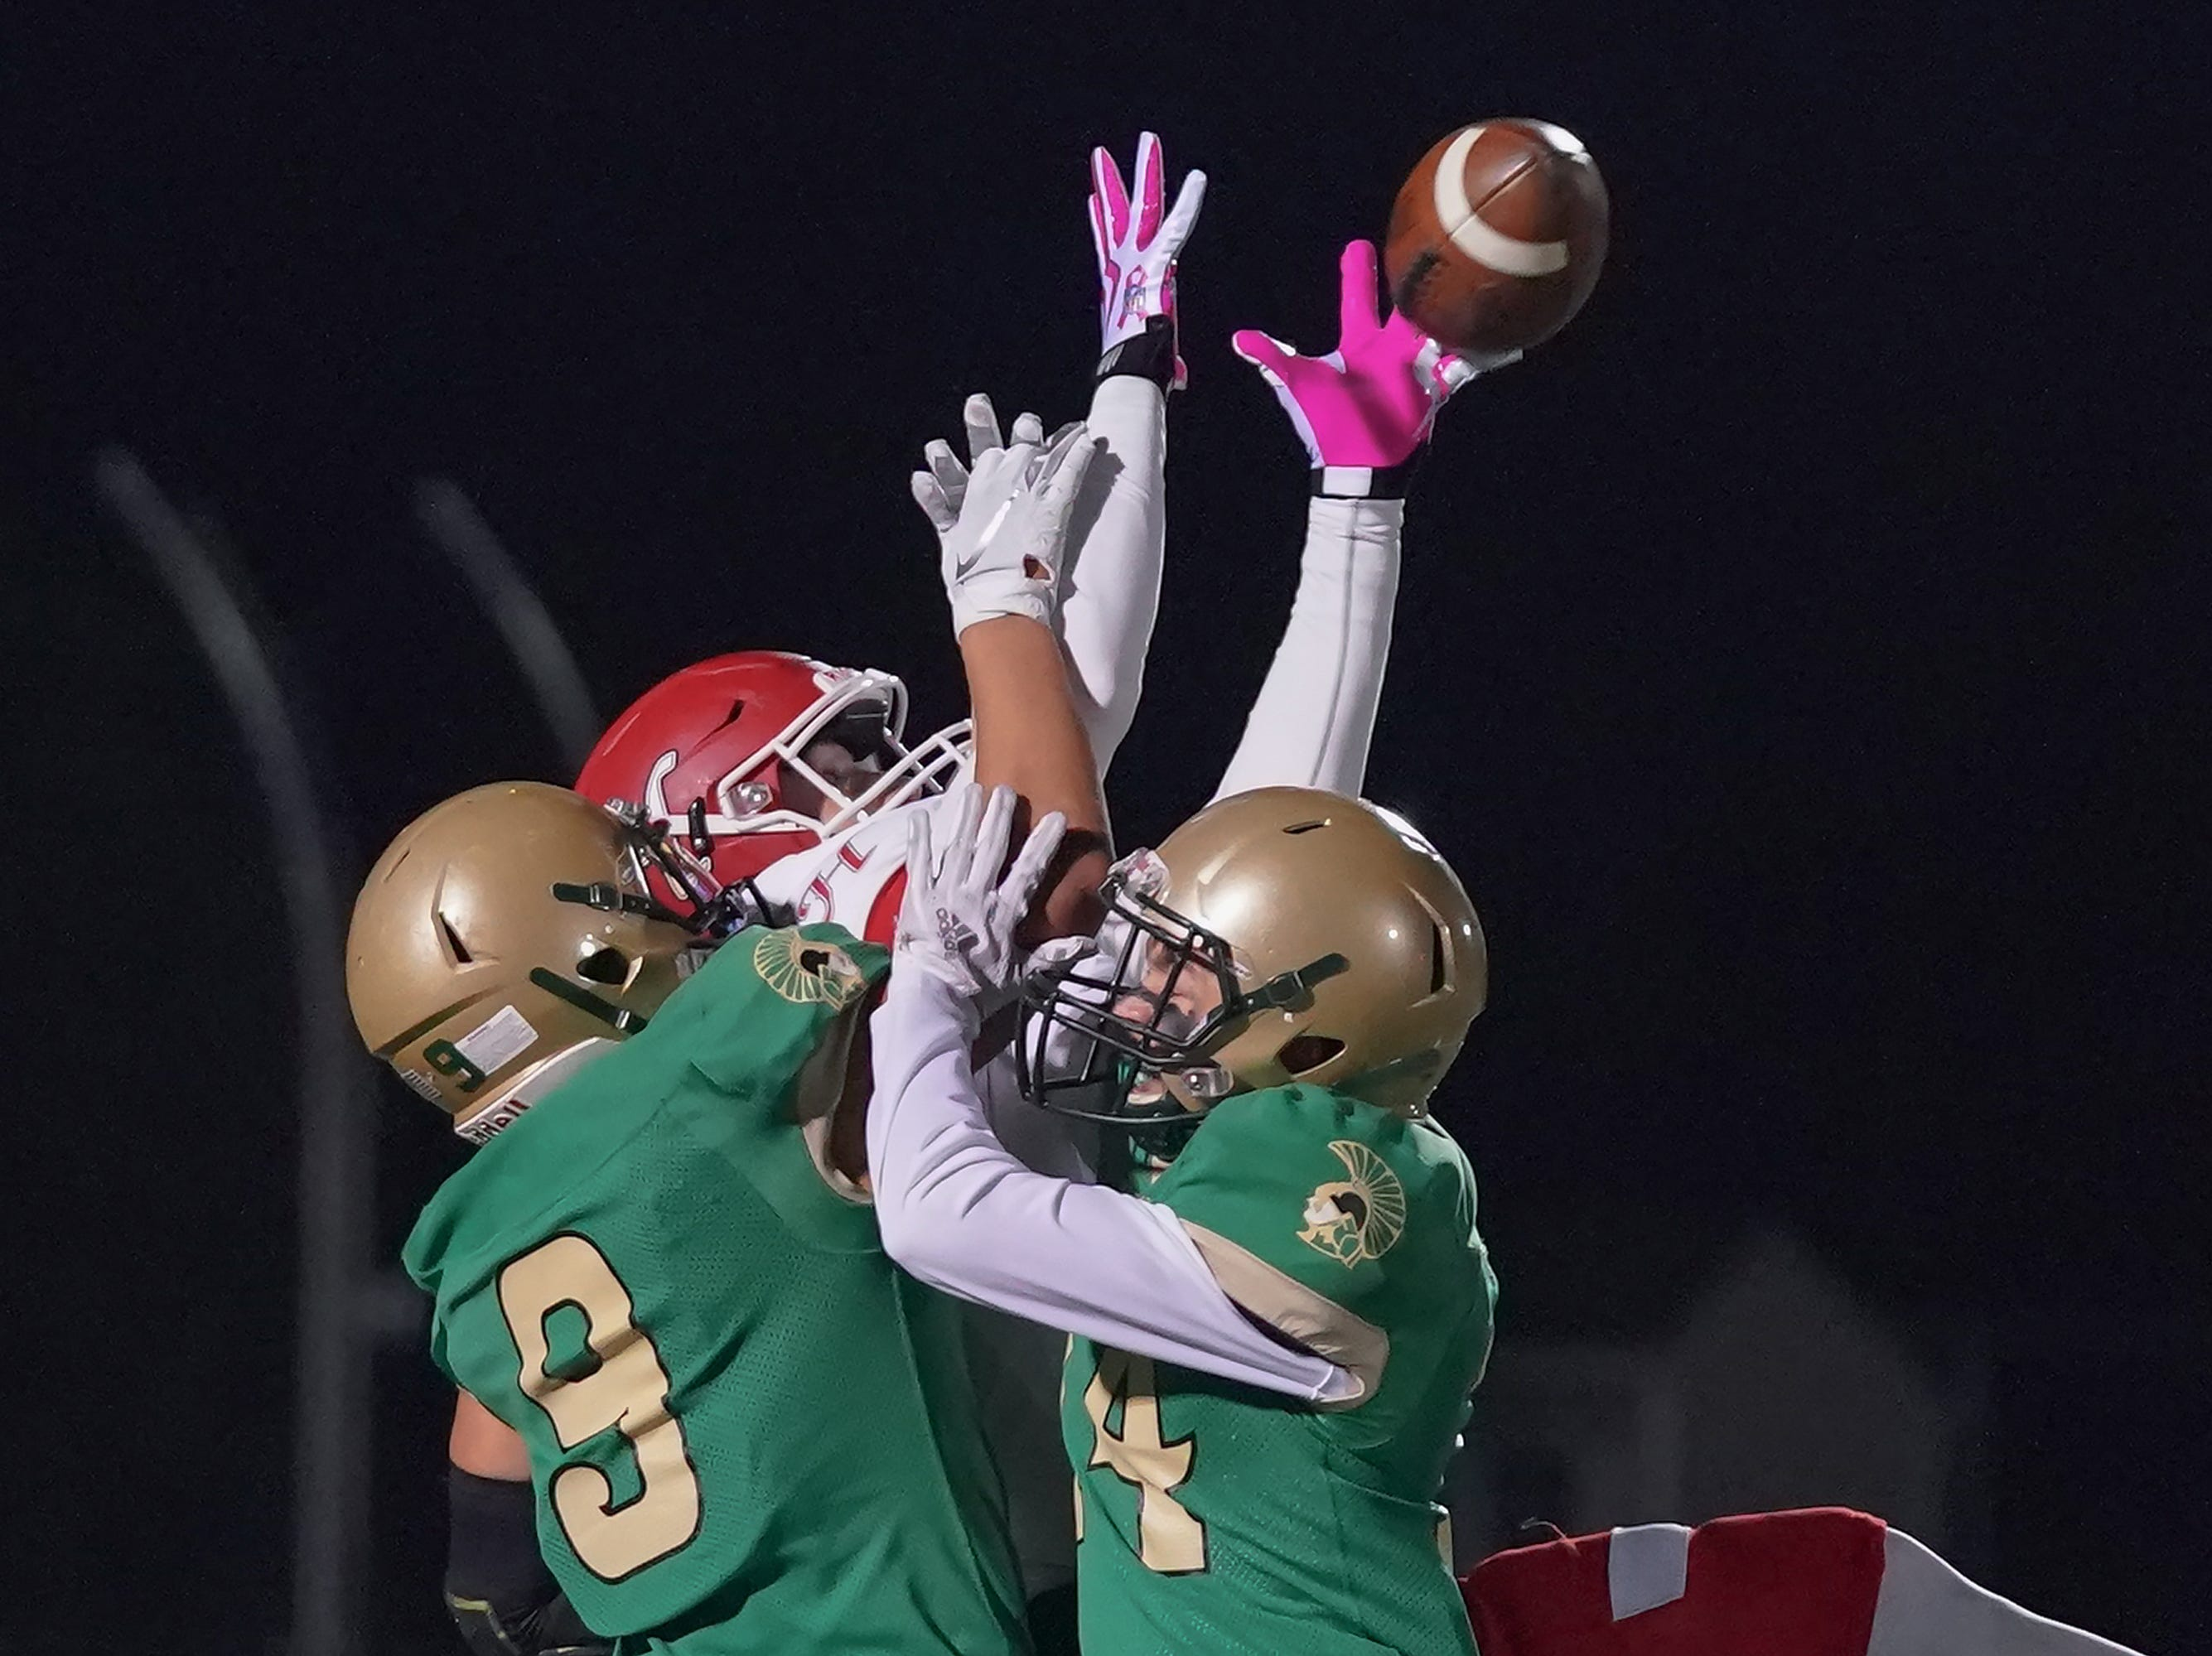 Josh Giese (84) of Hortonville can't make a catch while covered by Aittipon Thao (9) and Caden McCartney (14) of Oshkosh North. The Oshkosh North Spartans hosted the Hortonville Polar Bears in an FVA-South conference matchup Friday evening, October 12, 2018 at J. J. Keller Field at Titan Stadium.